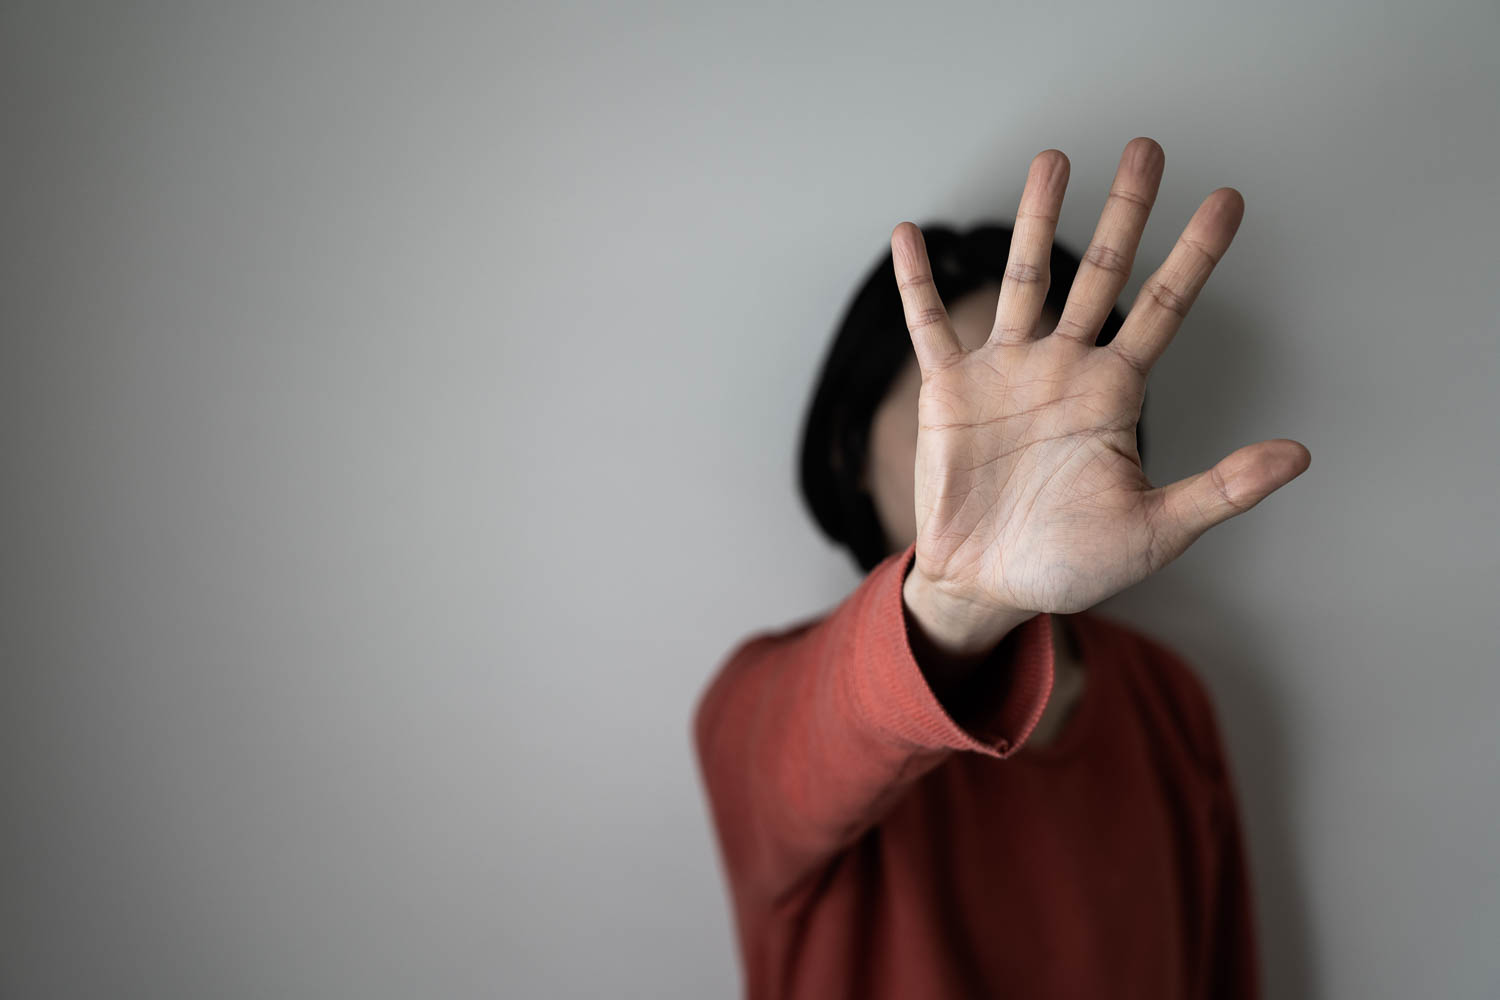 A woman stand against a wall with her hand in front of her face. mandatory reporting guidelines in Florida for Sexual battery and abuse